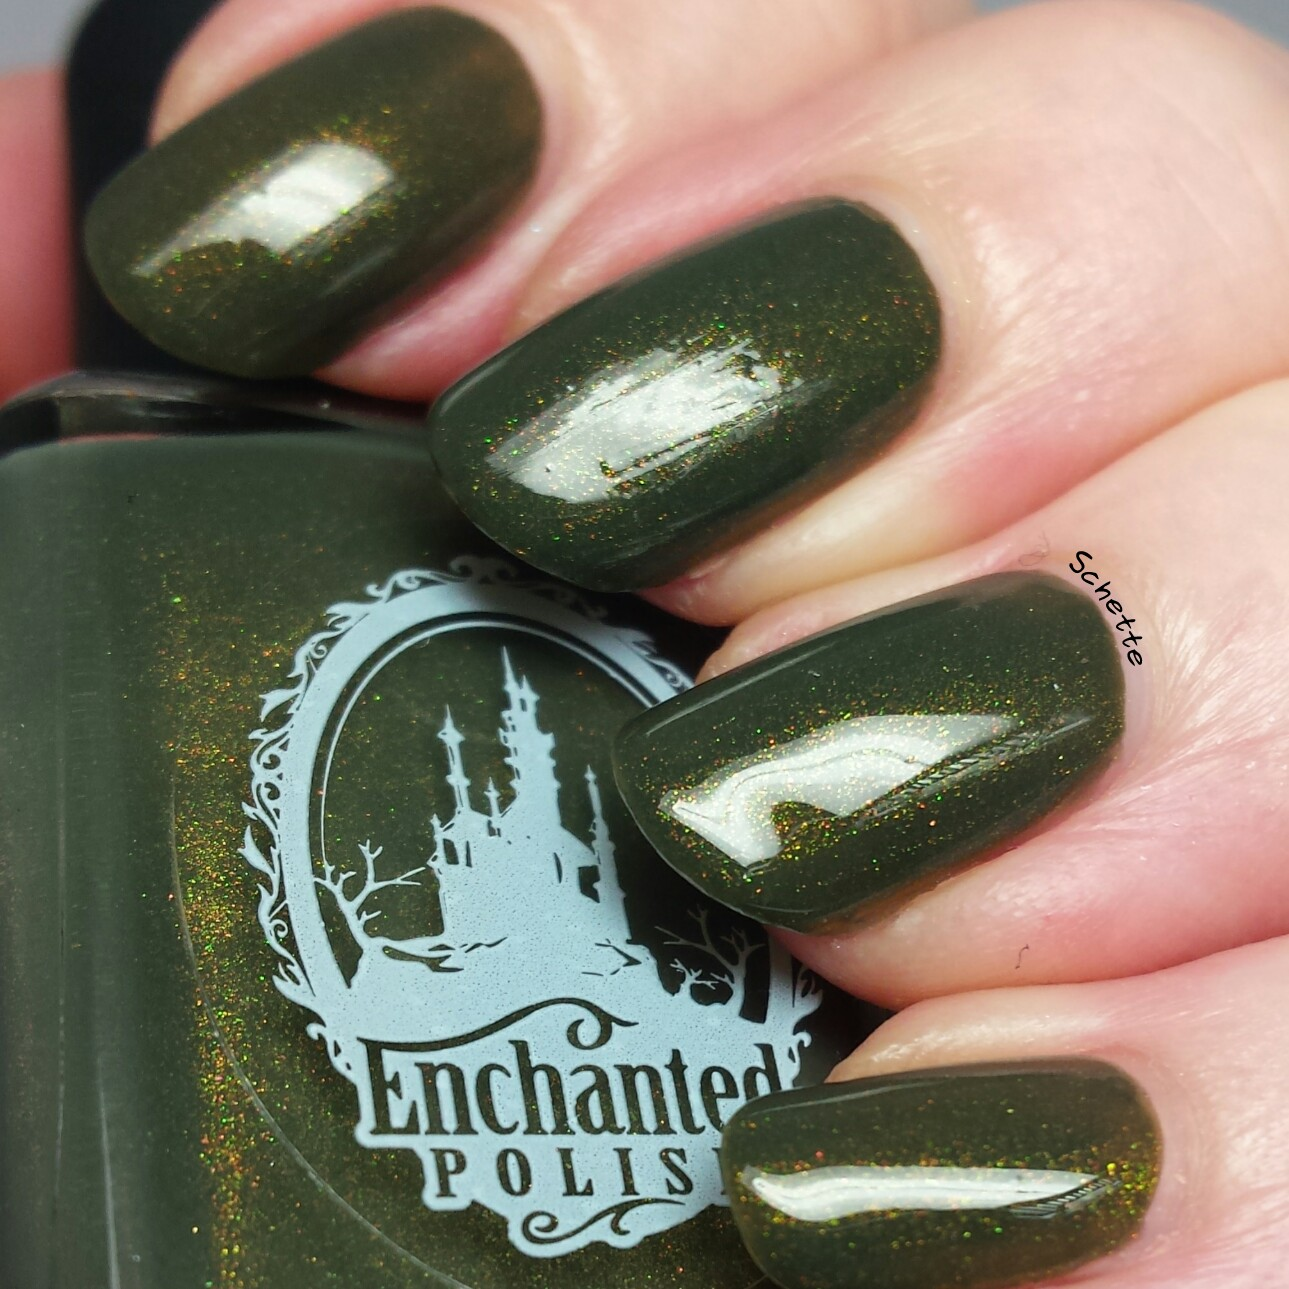 Enchanted Polish : Garland